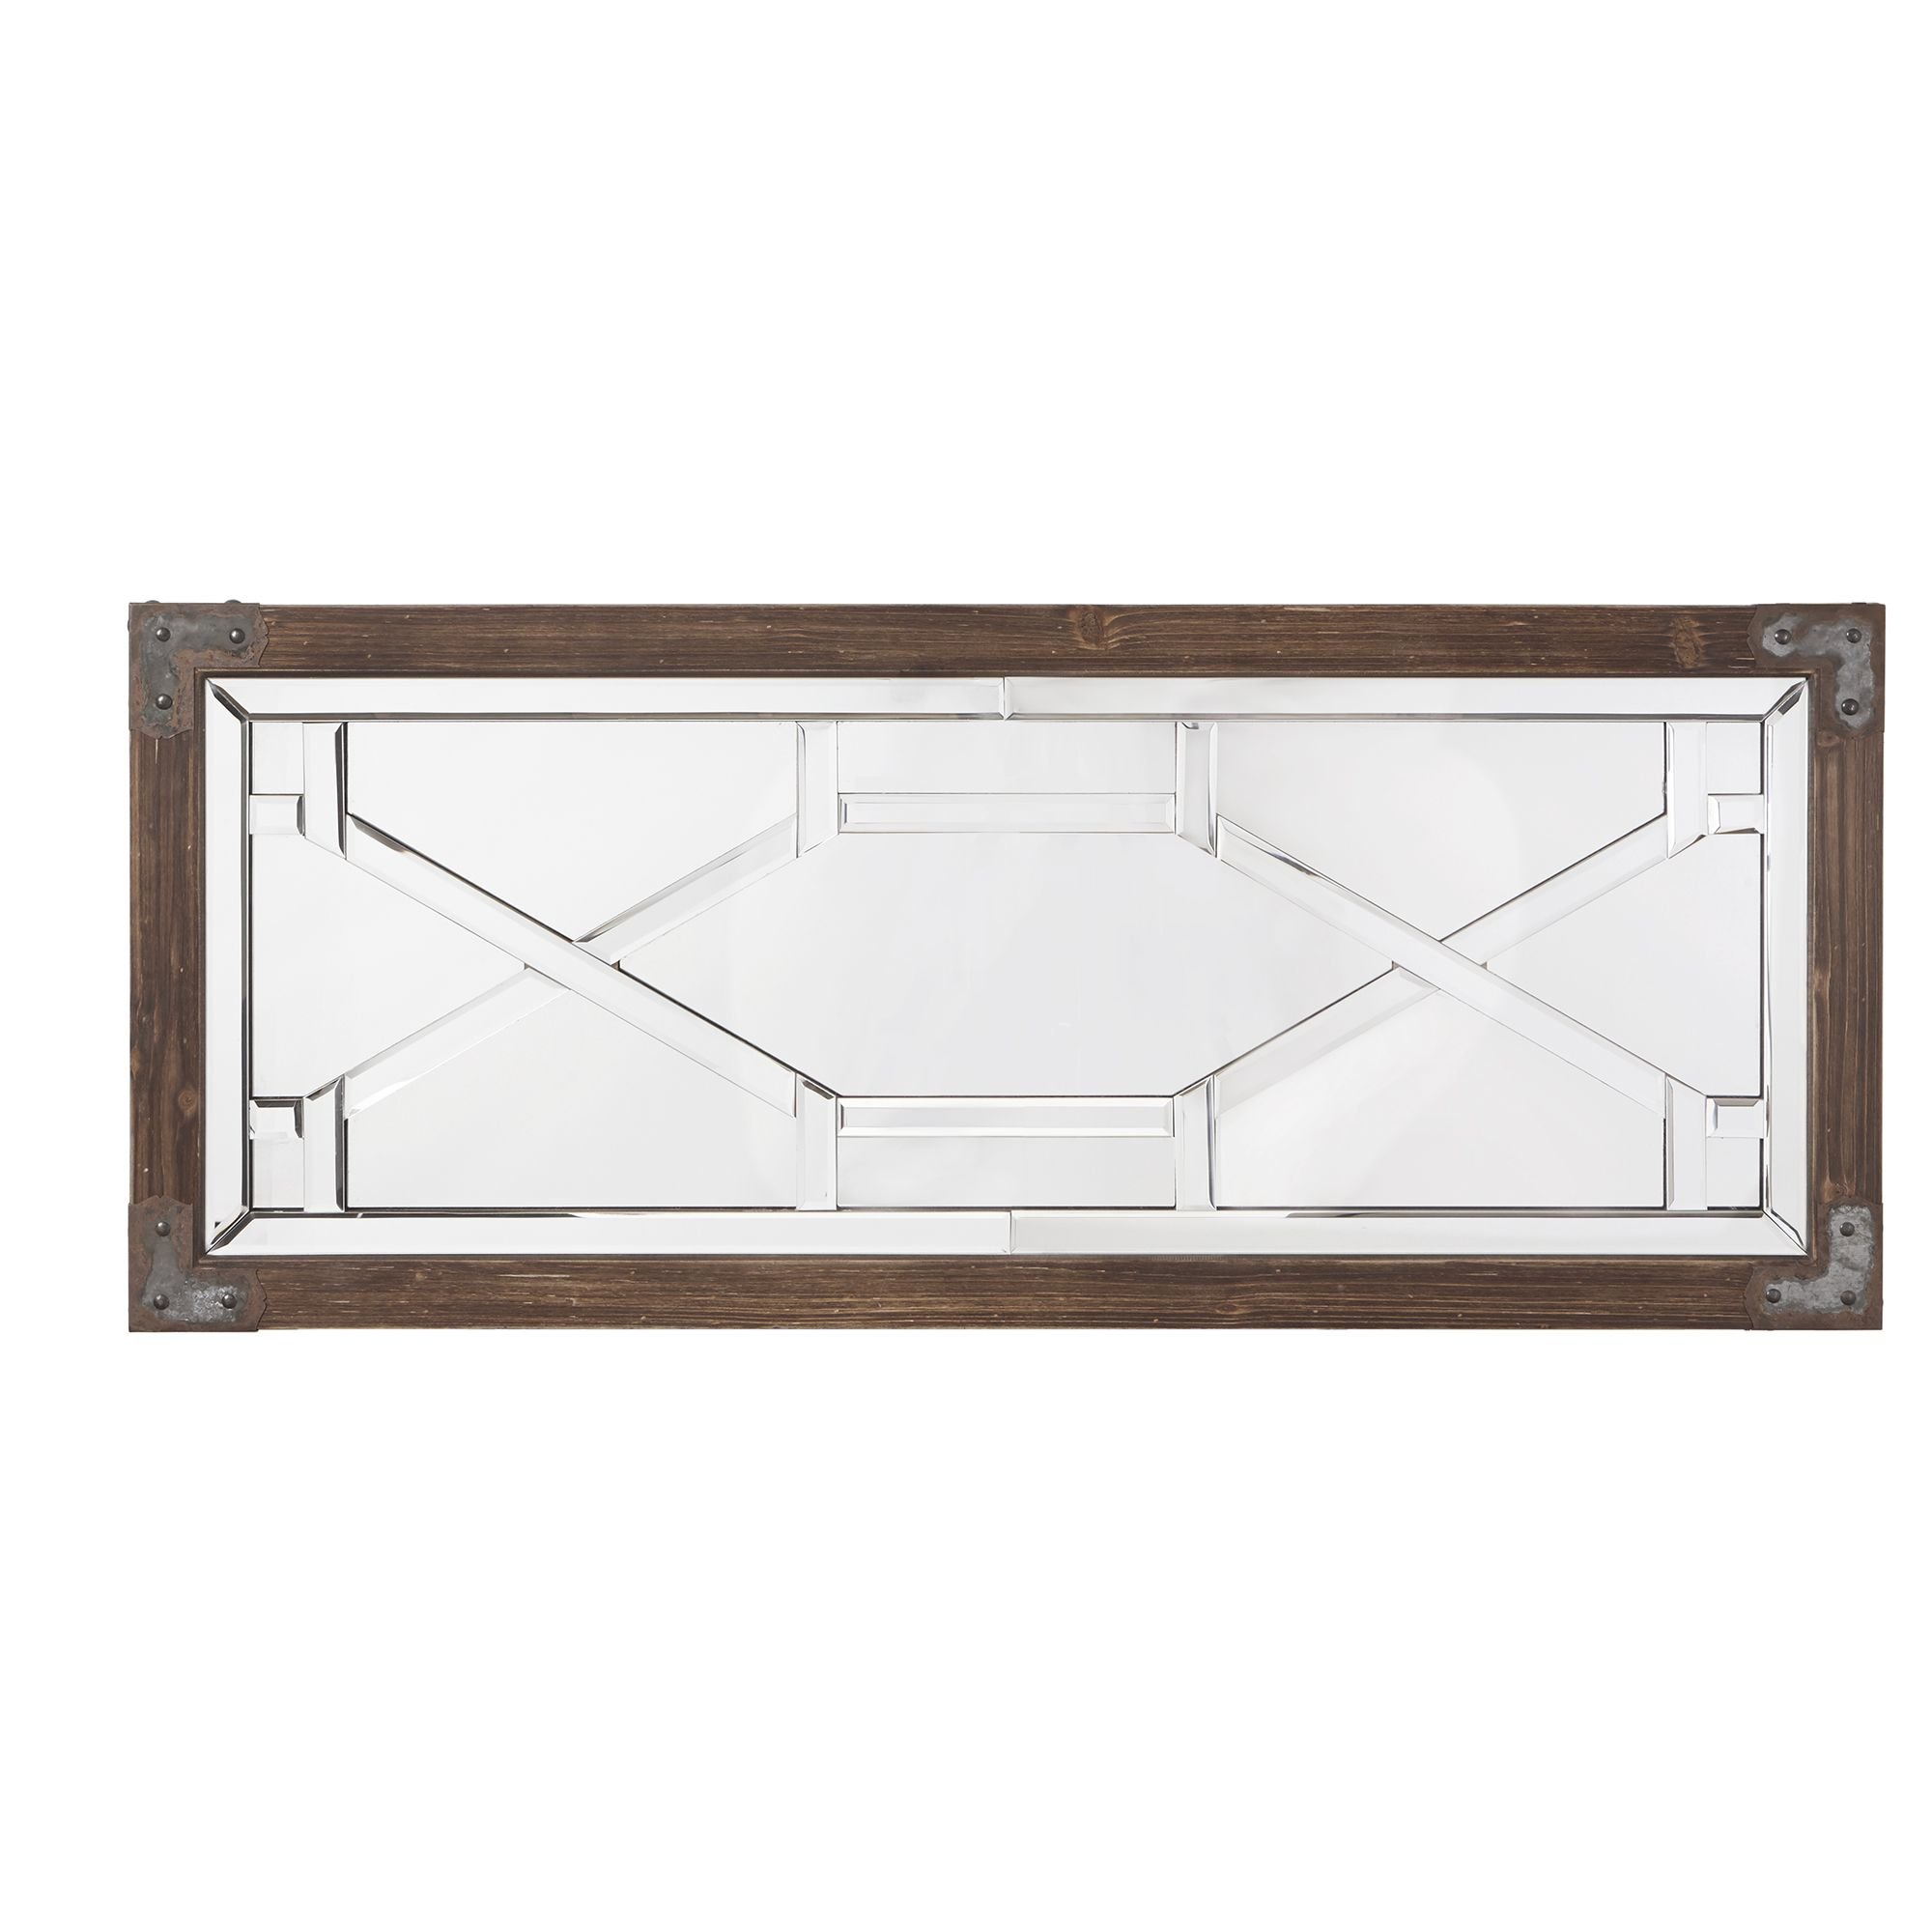 Choquette Modern And Contemporary Full Length Mirror For Koeller Industrial Metal Wall Mirrors (View 14 of 20)